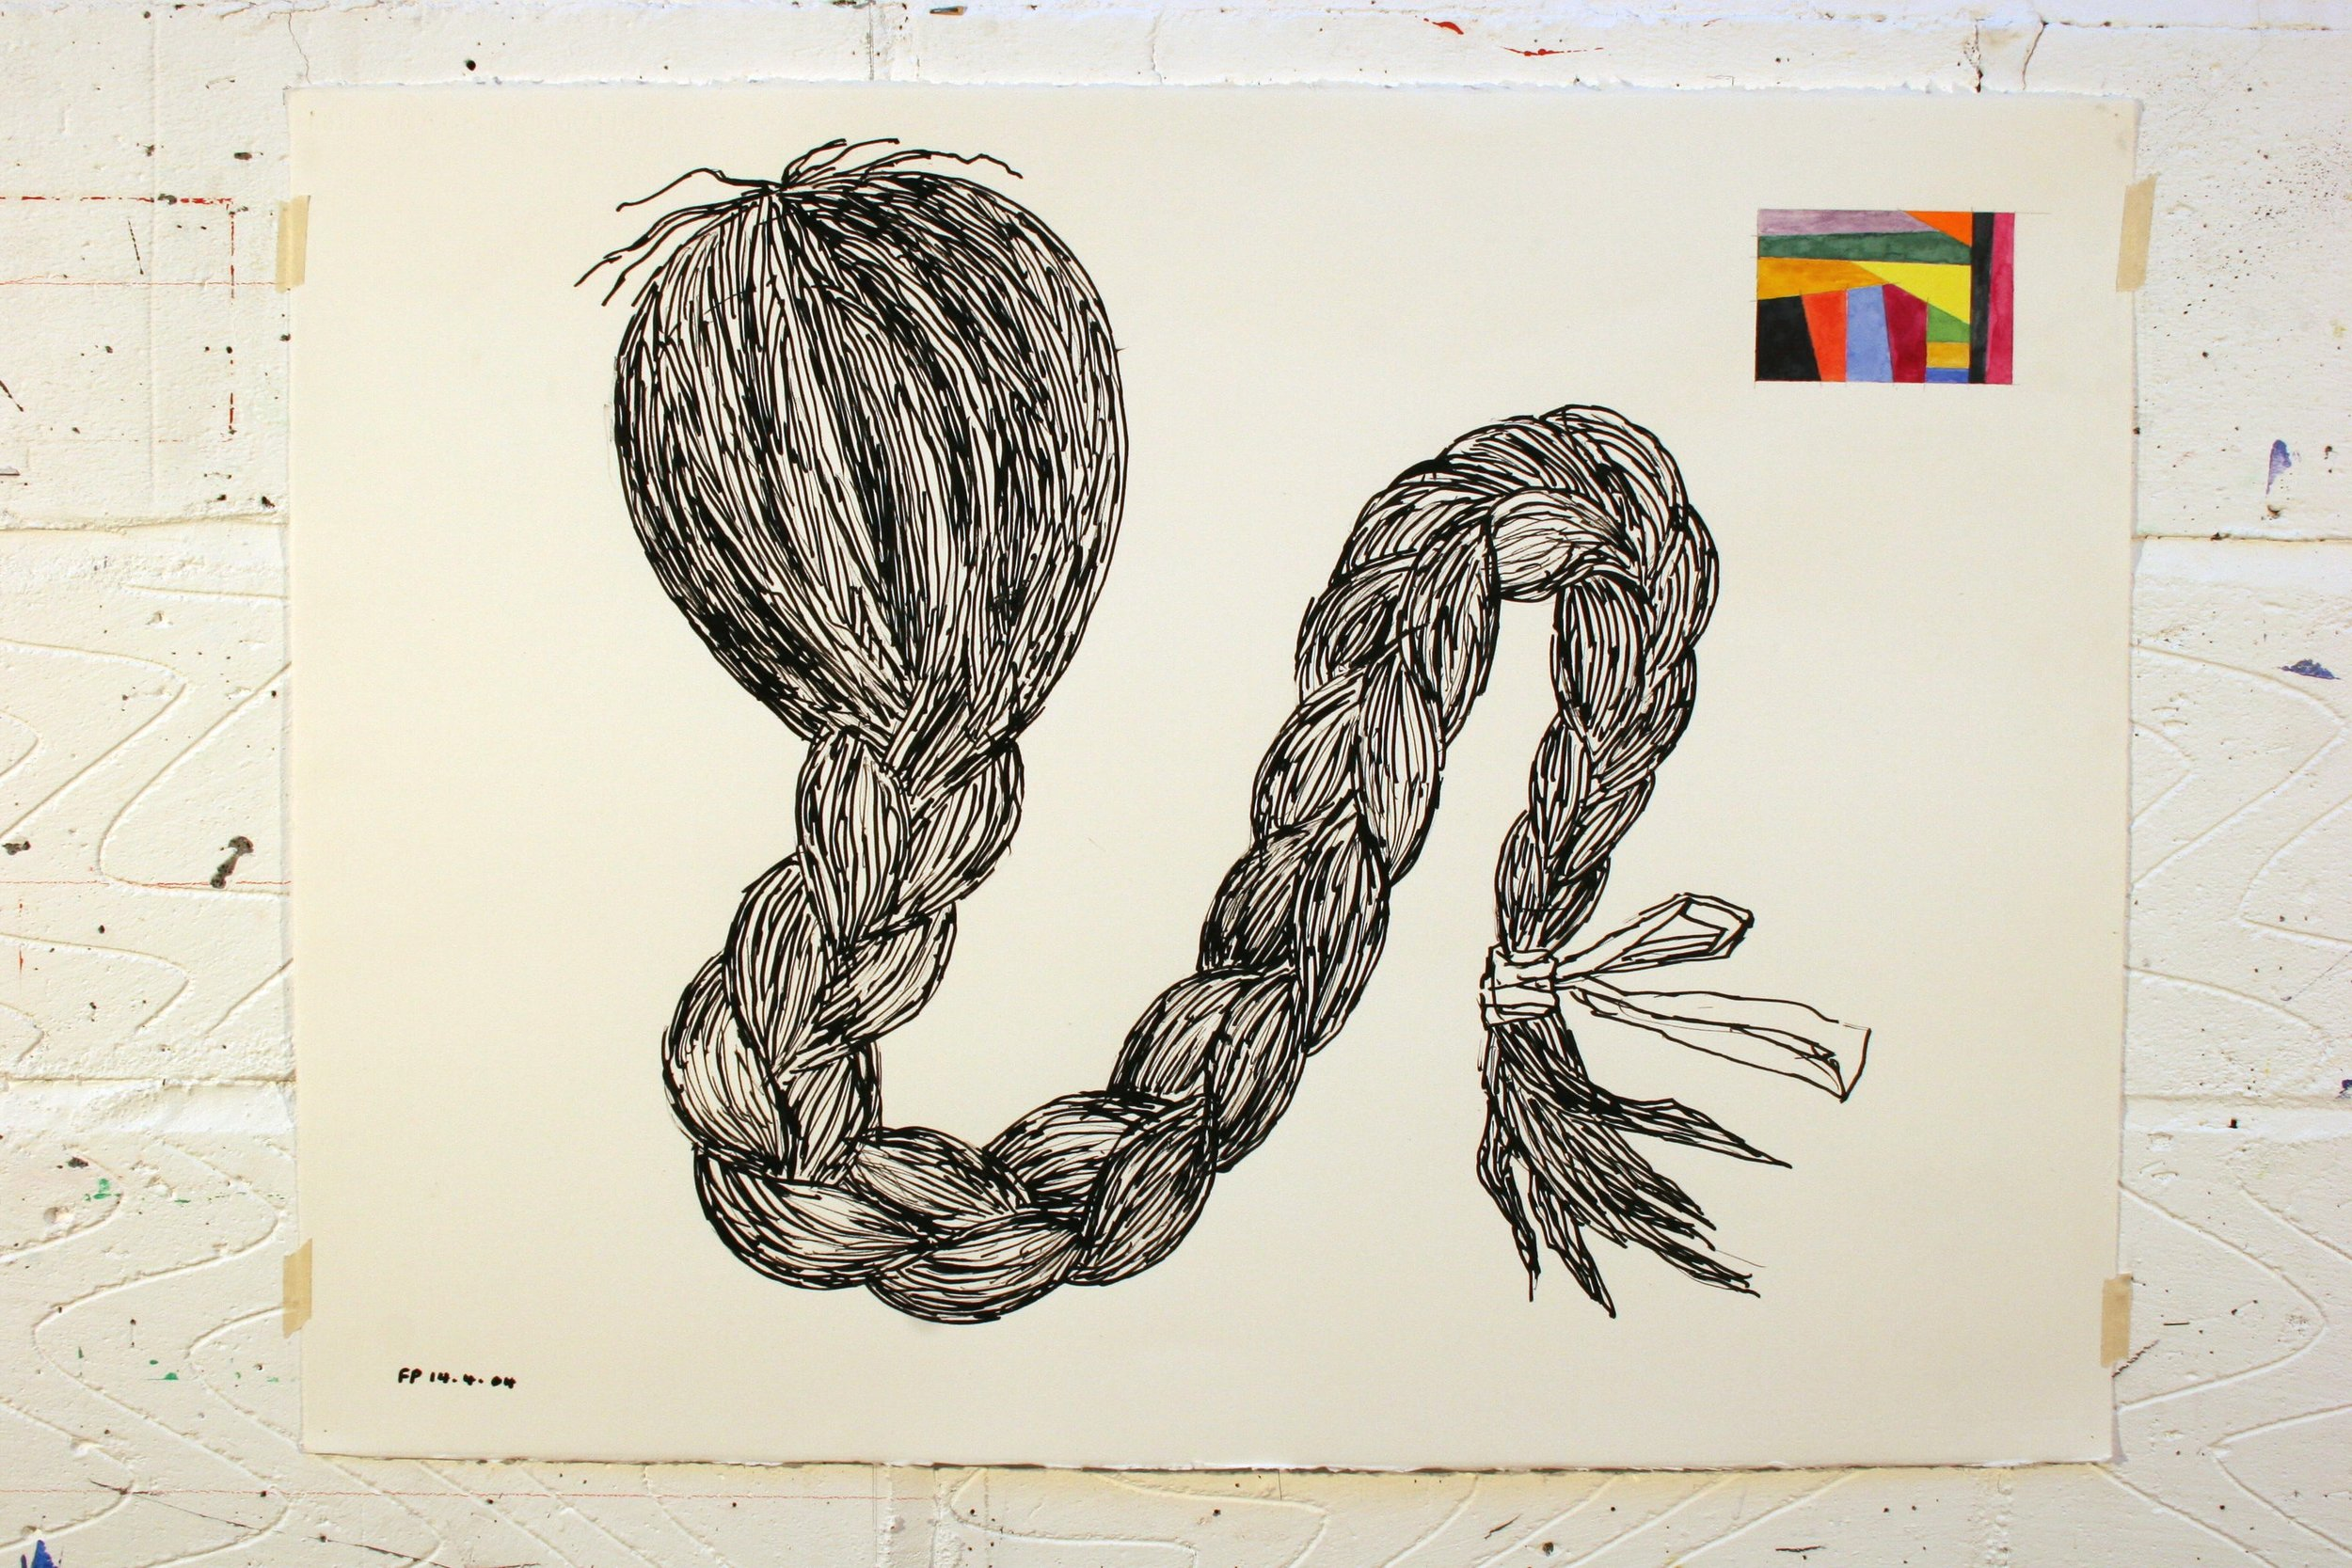 Fabian's recent work on paper (2001-2005) 010 (2).jpg